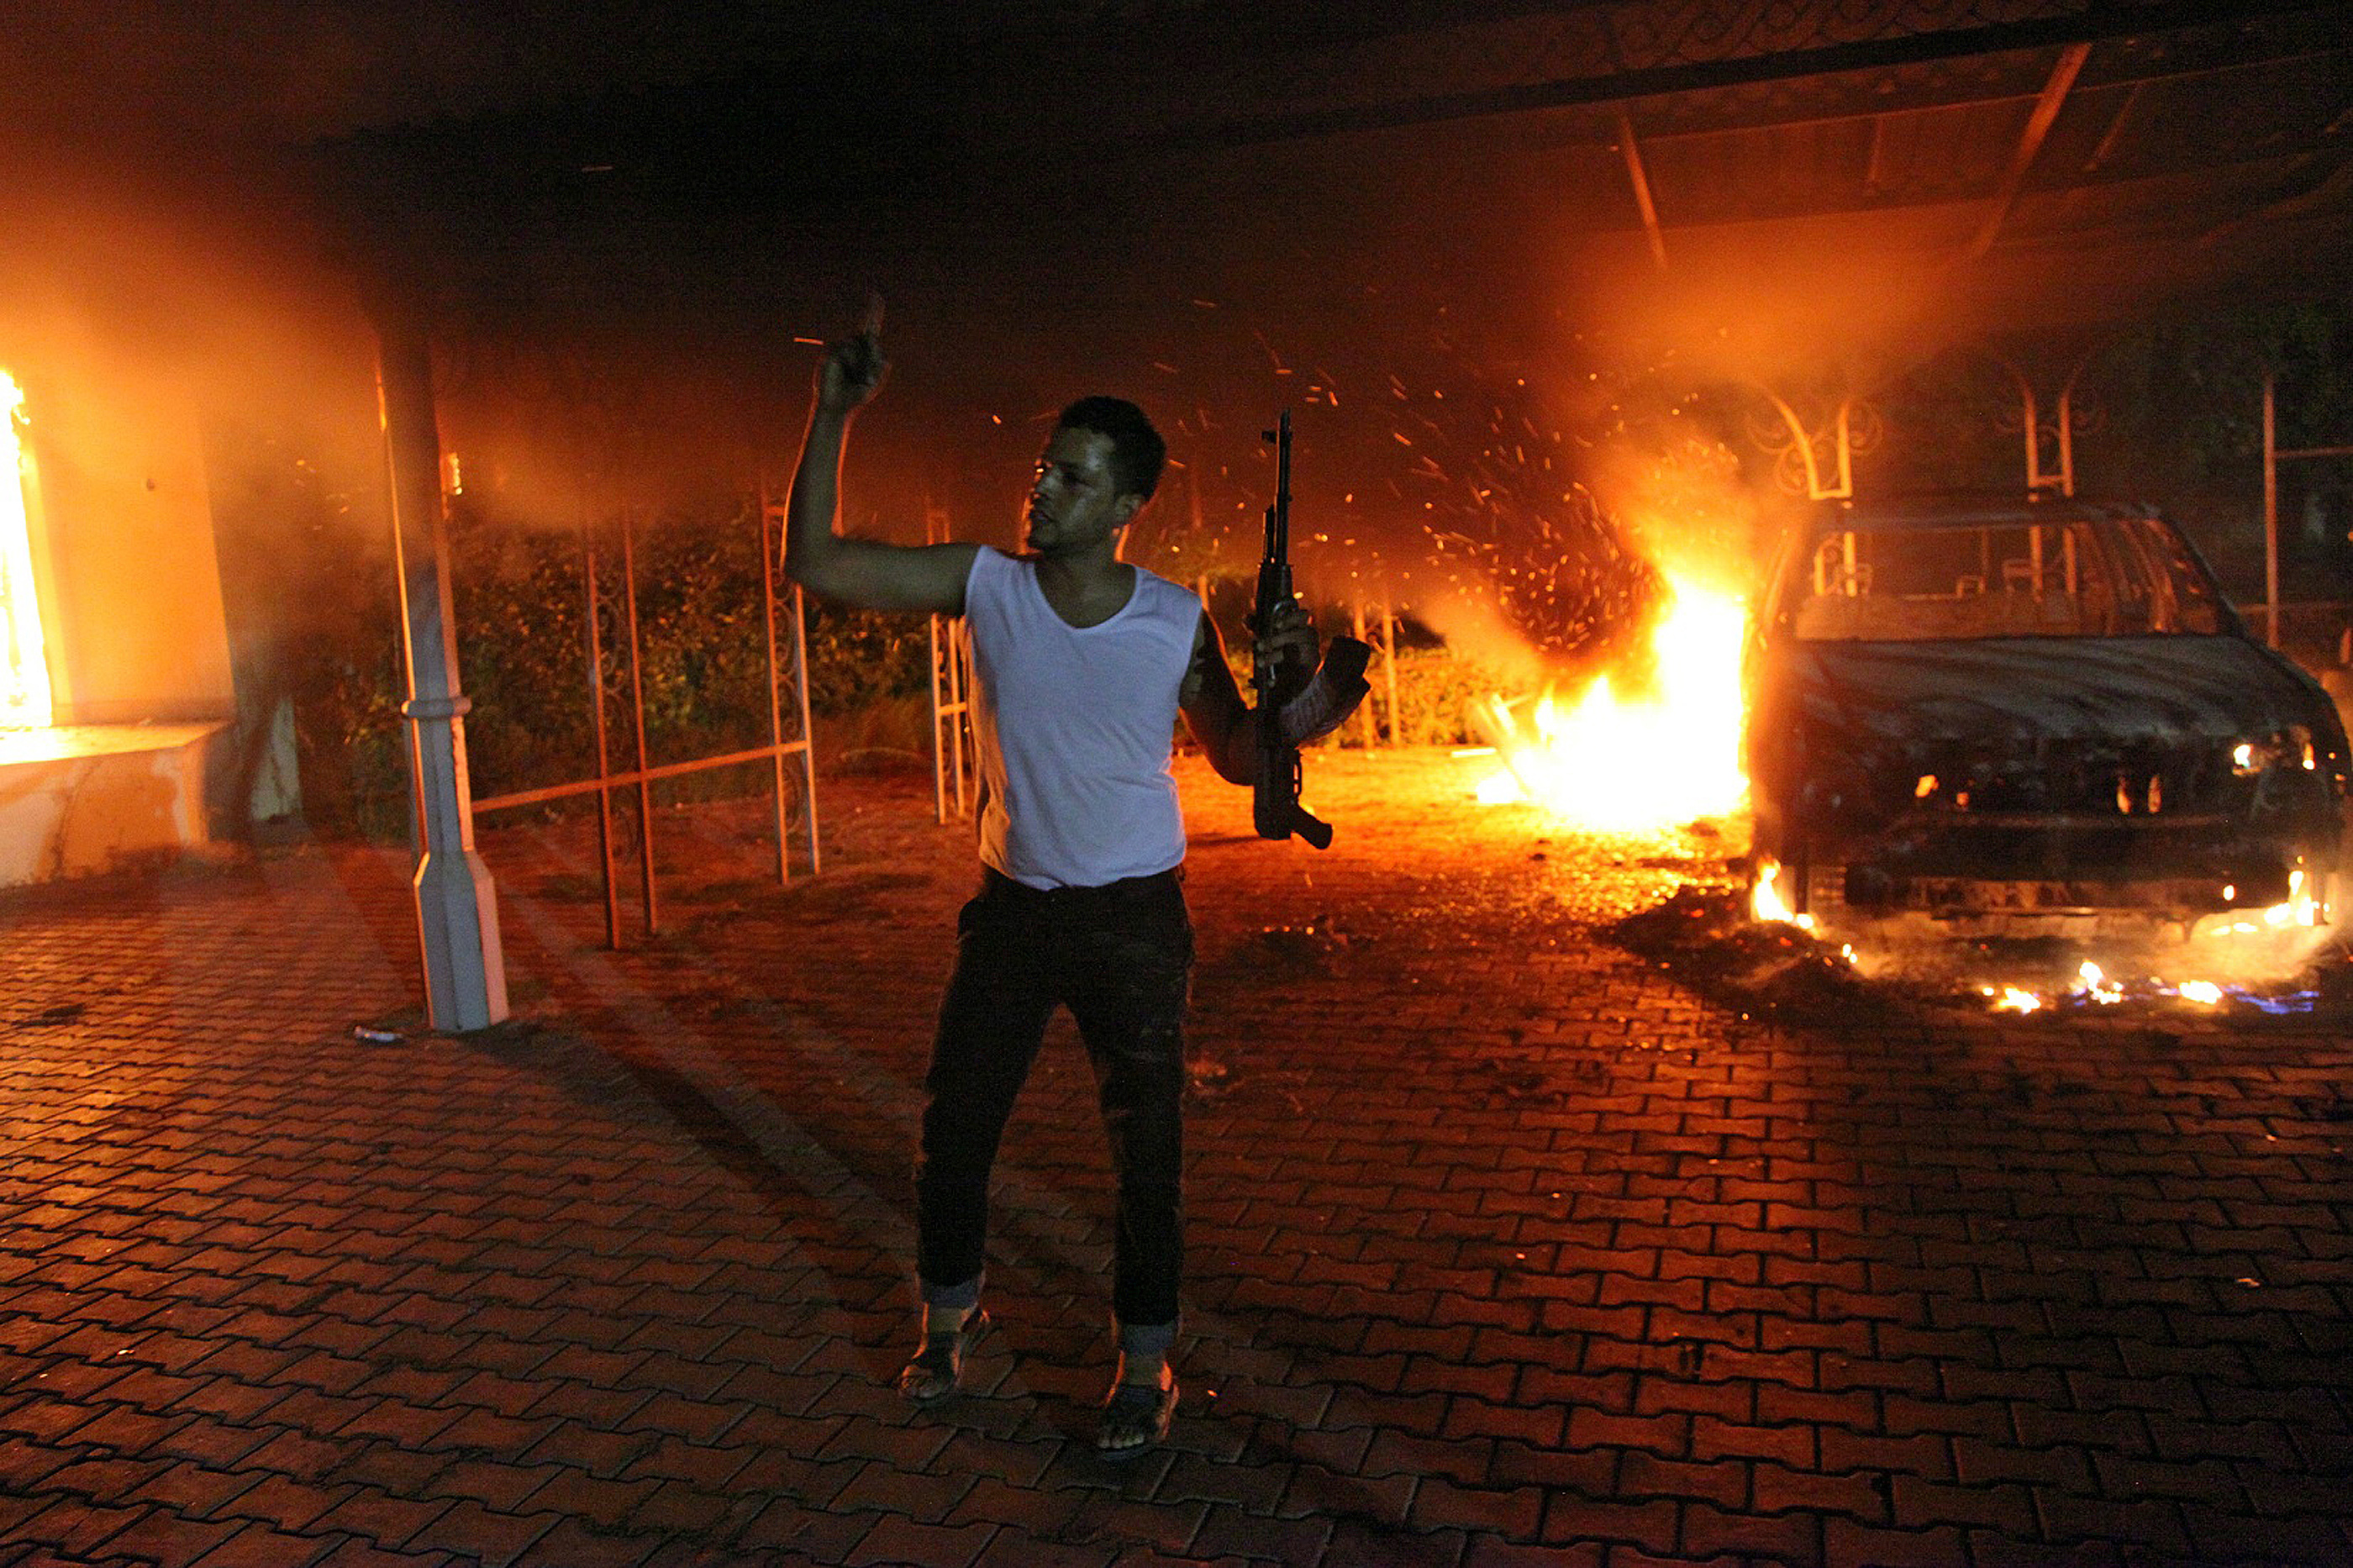 An armed man during the attack on the U.S. consulate in Benghazi on Sept. 11, 2012.